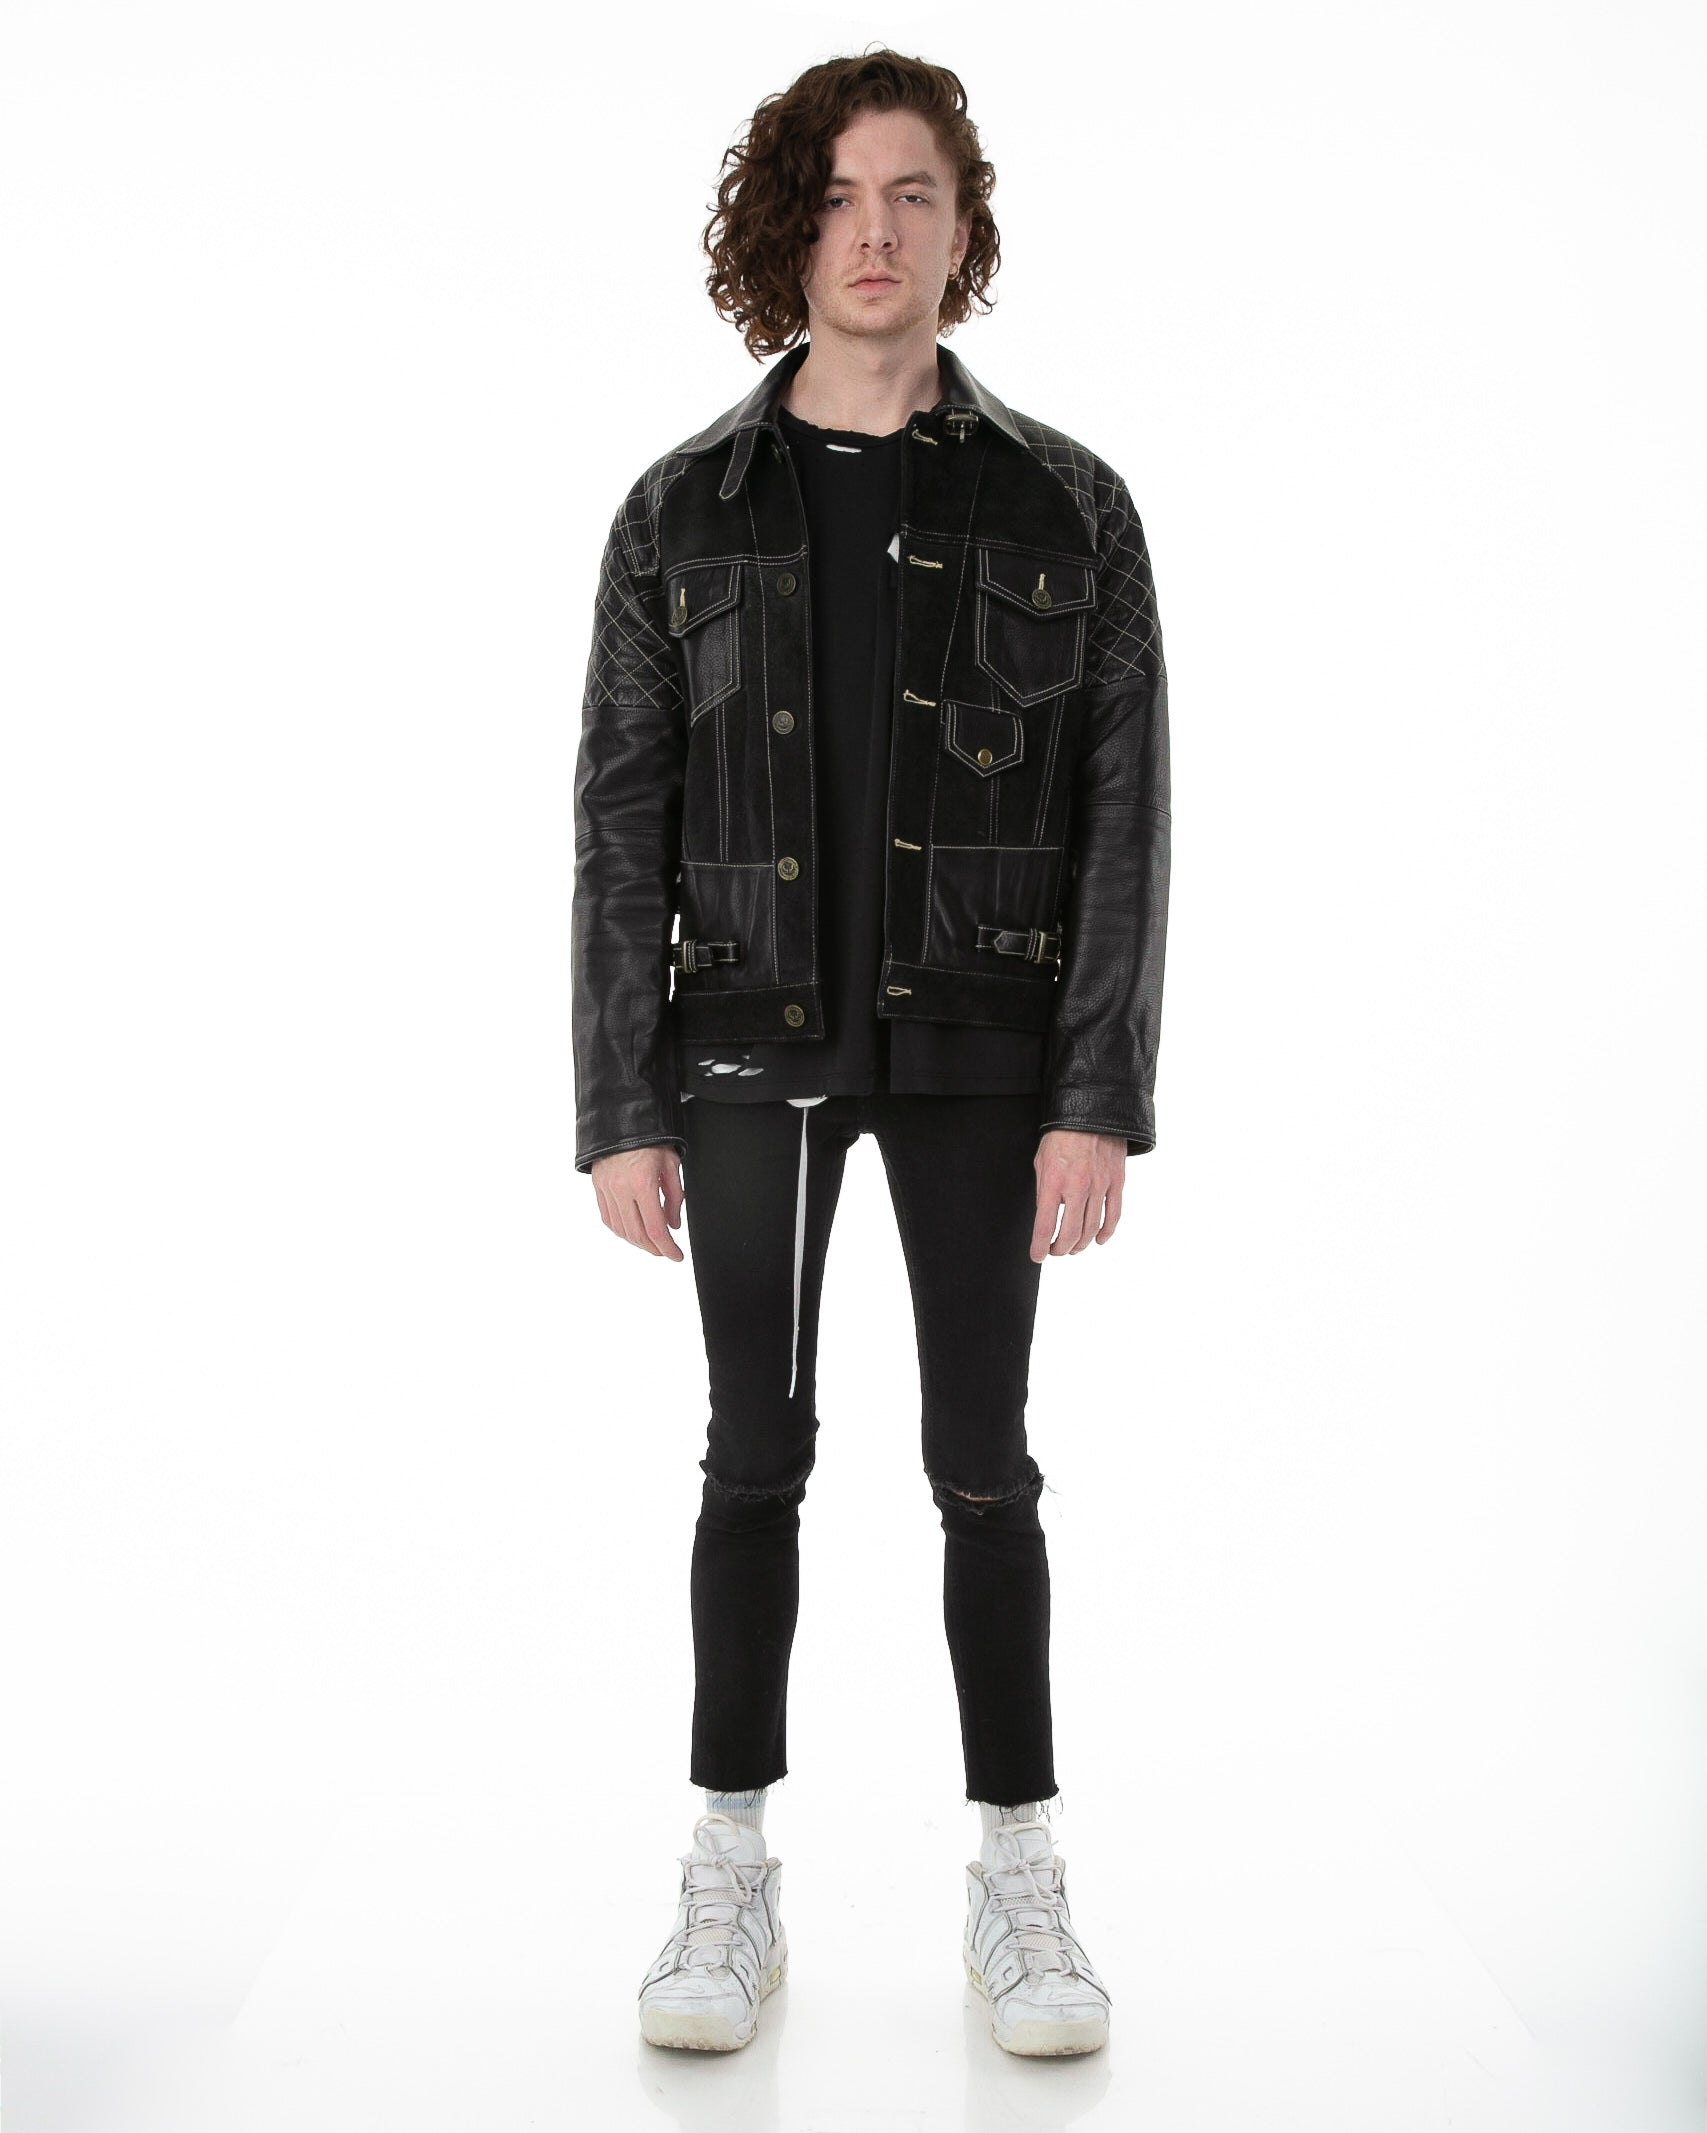 Front of male model wearing Emperor leather jacket